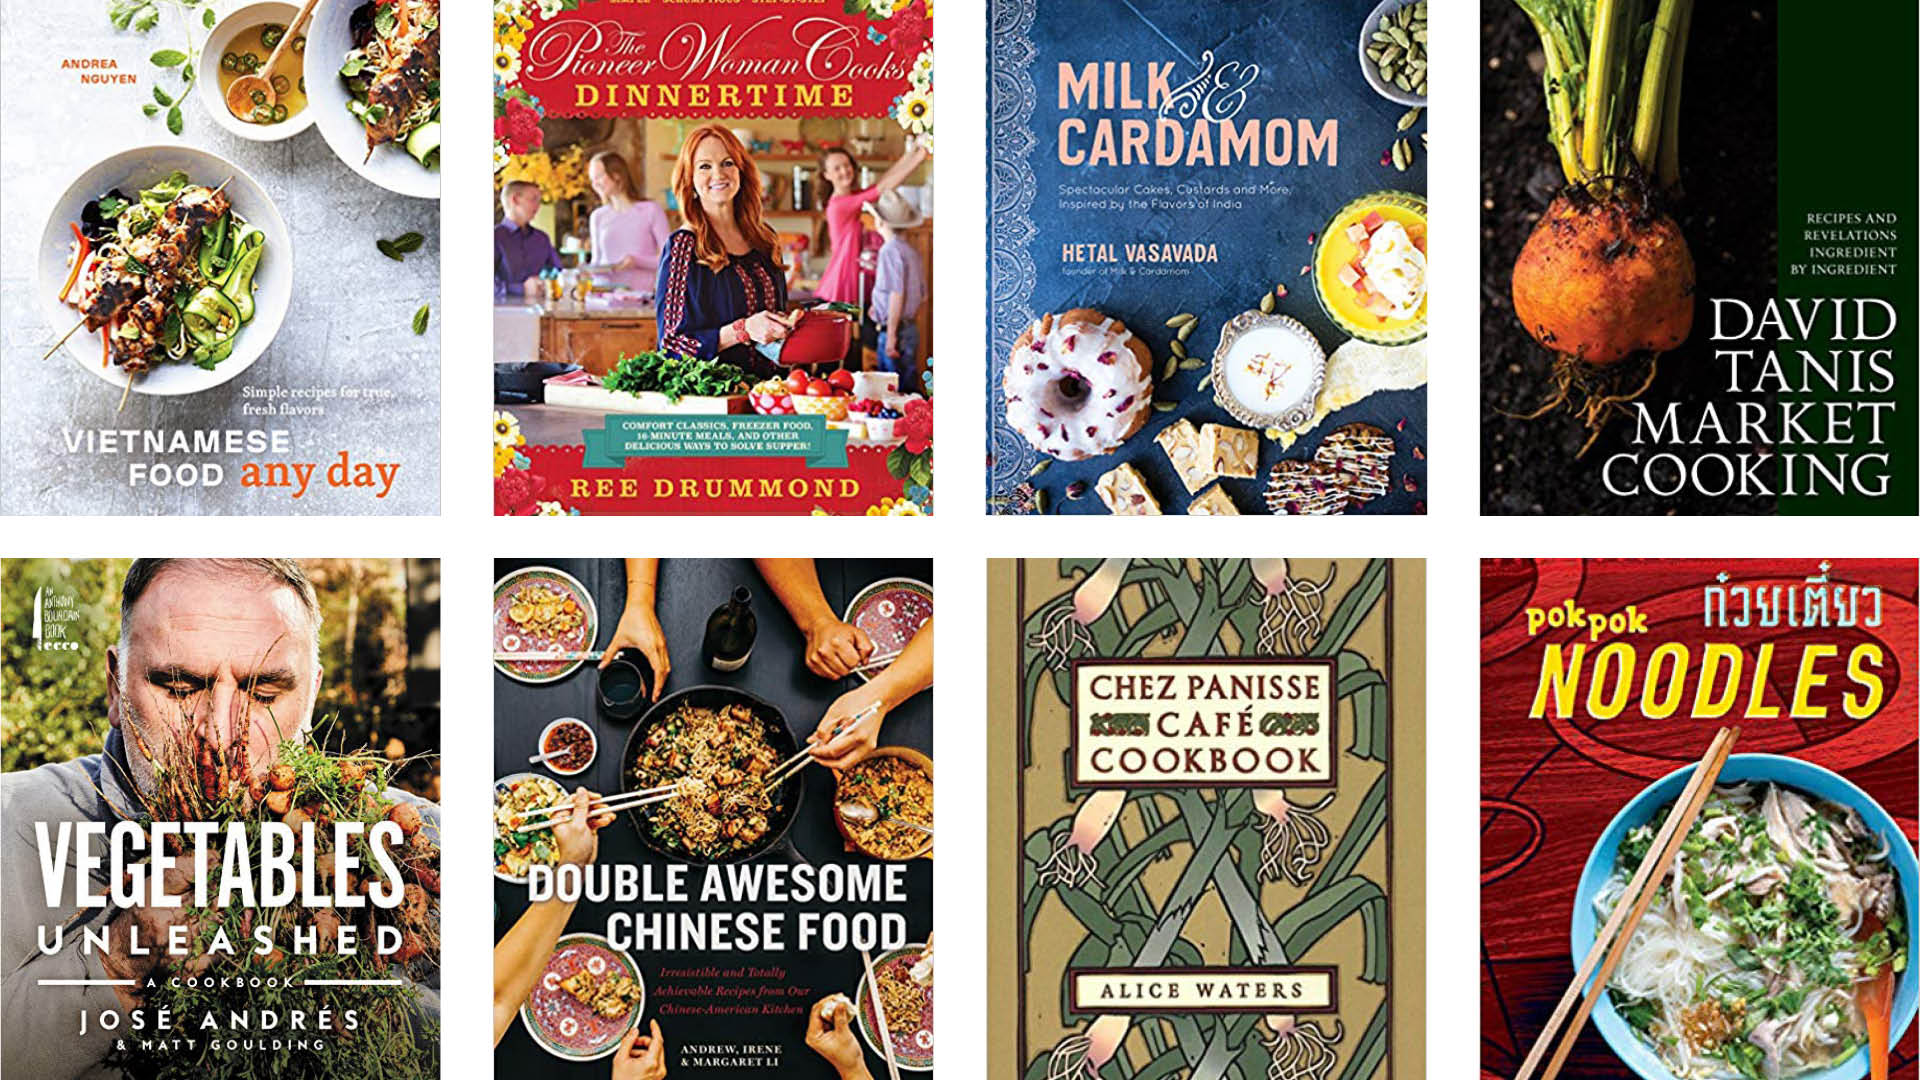 So many great books to choose from this August!